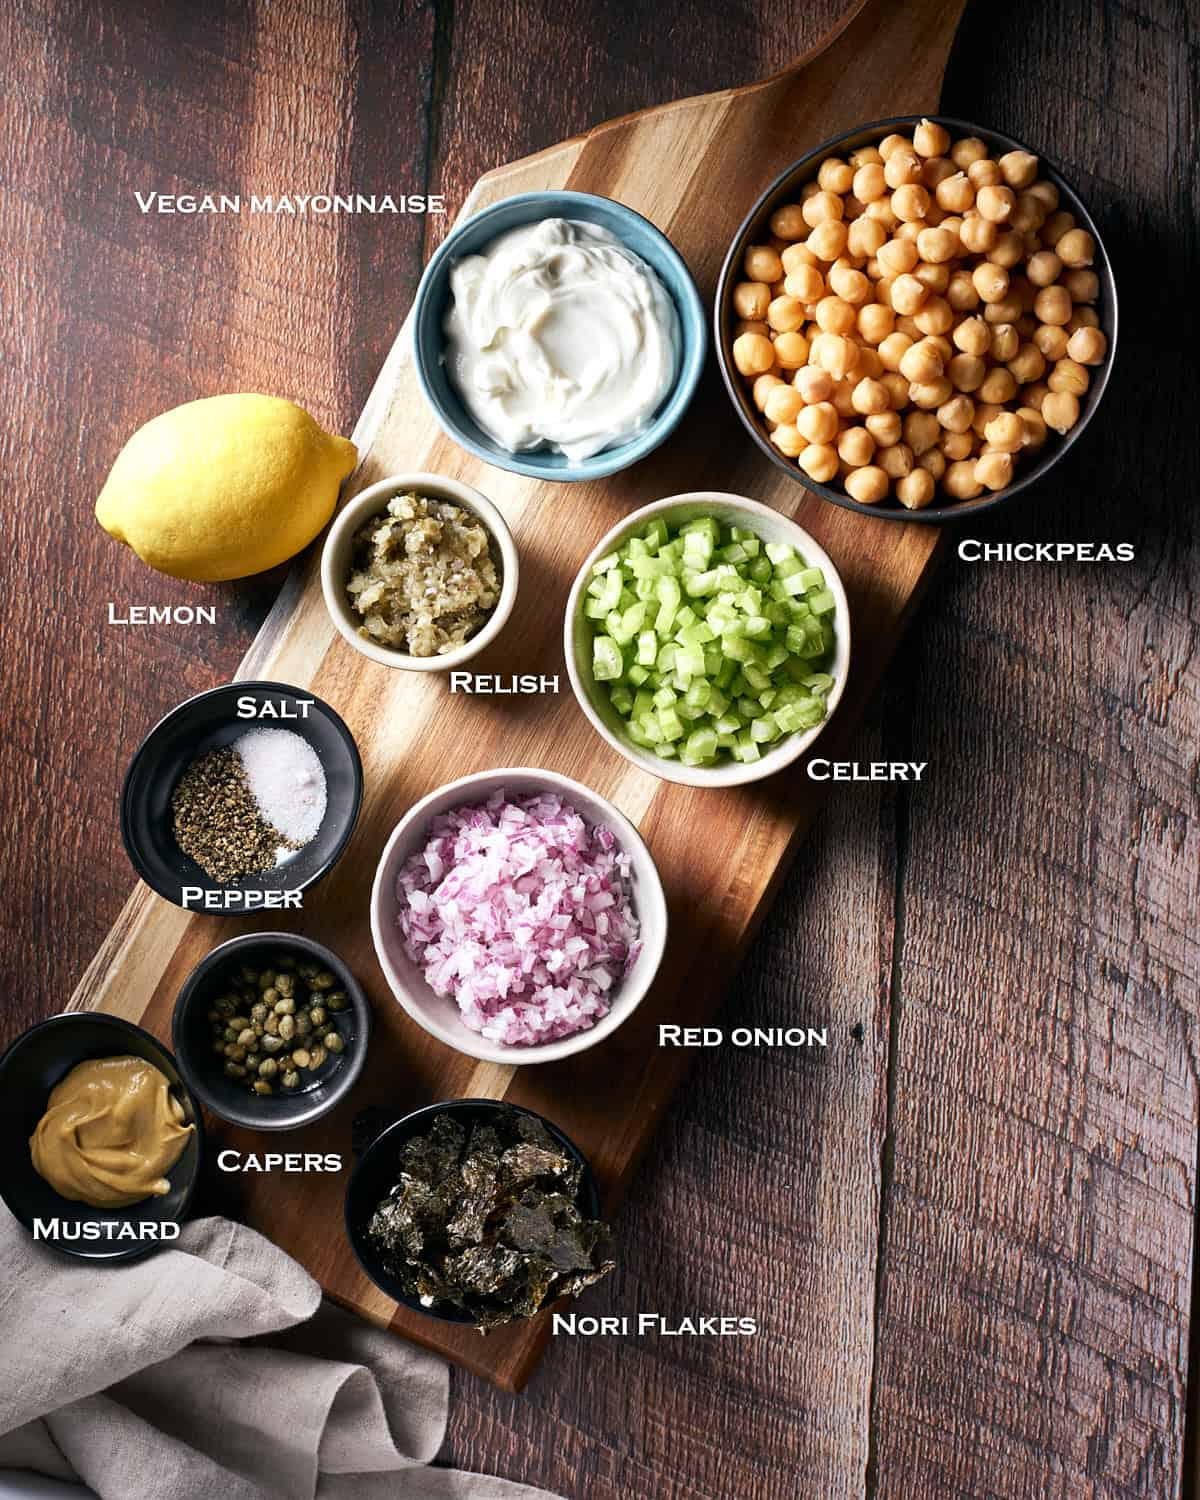 Top view of ingredients in bowls for vegan chickpea tuna salad sandwich